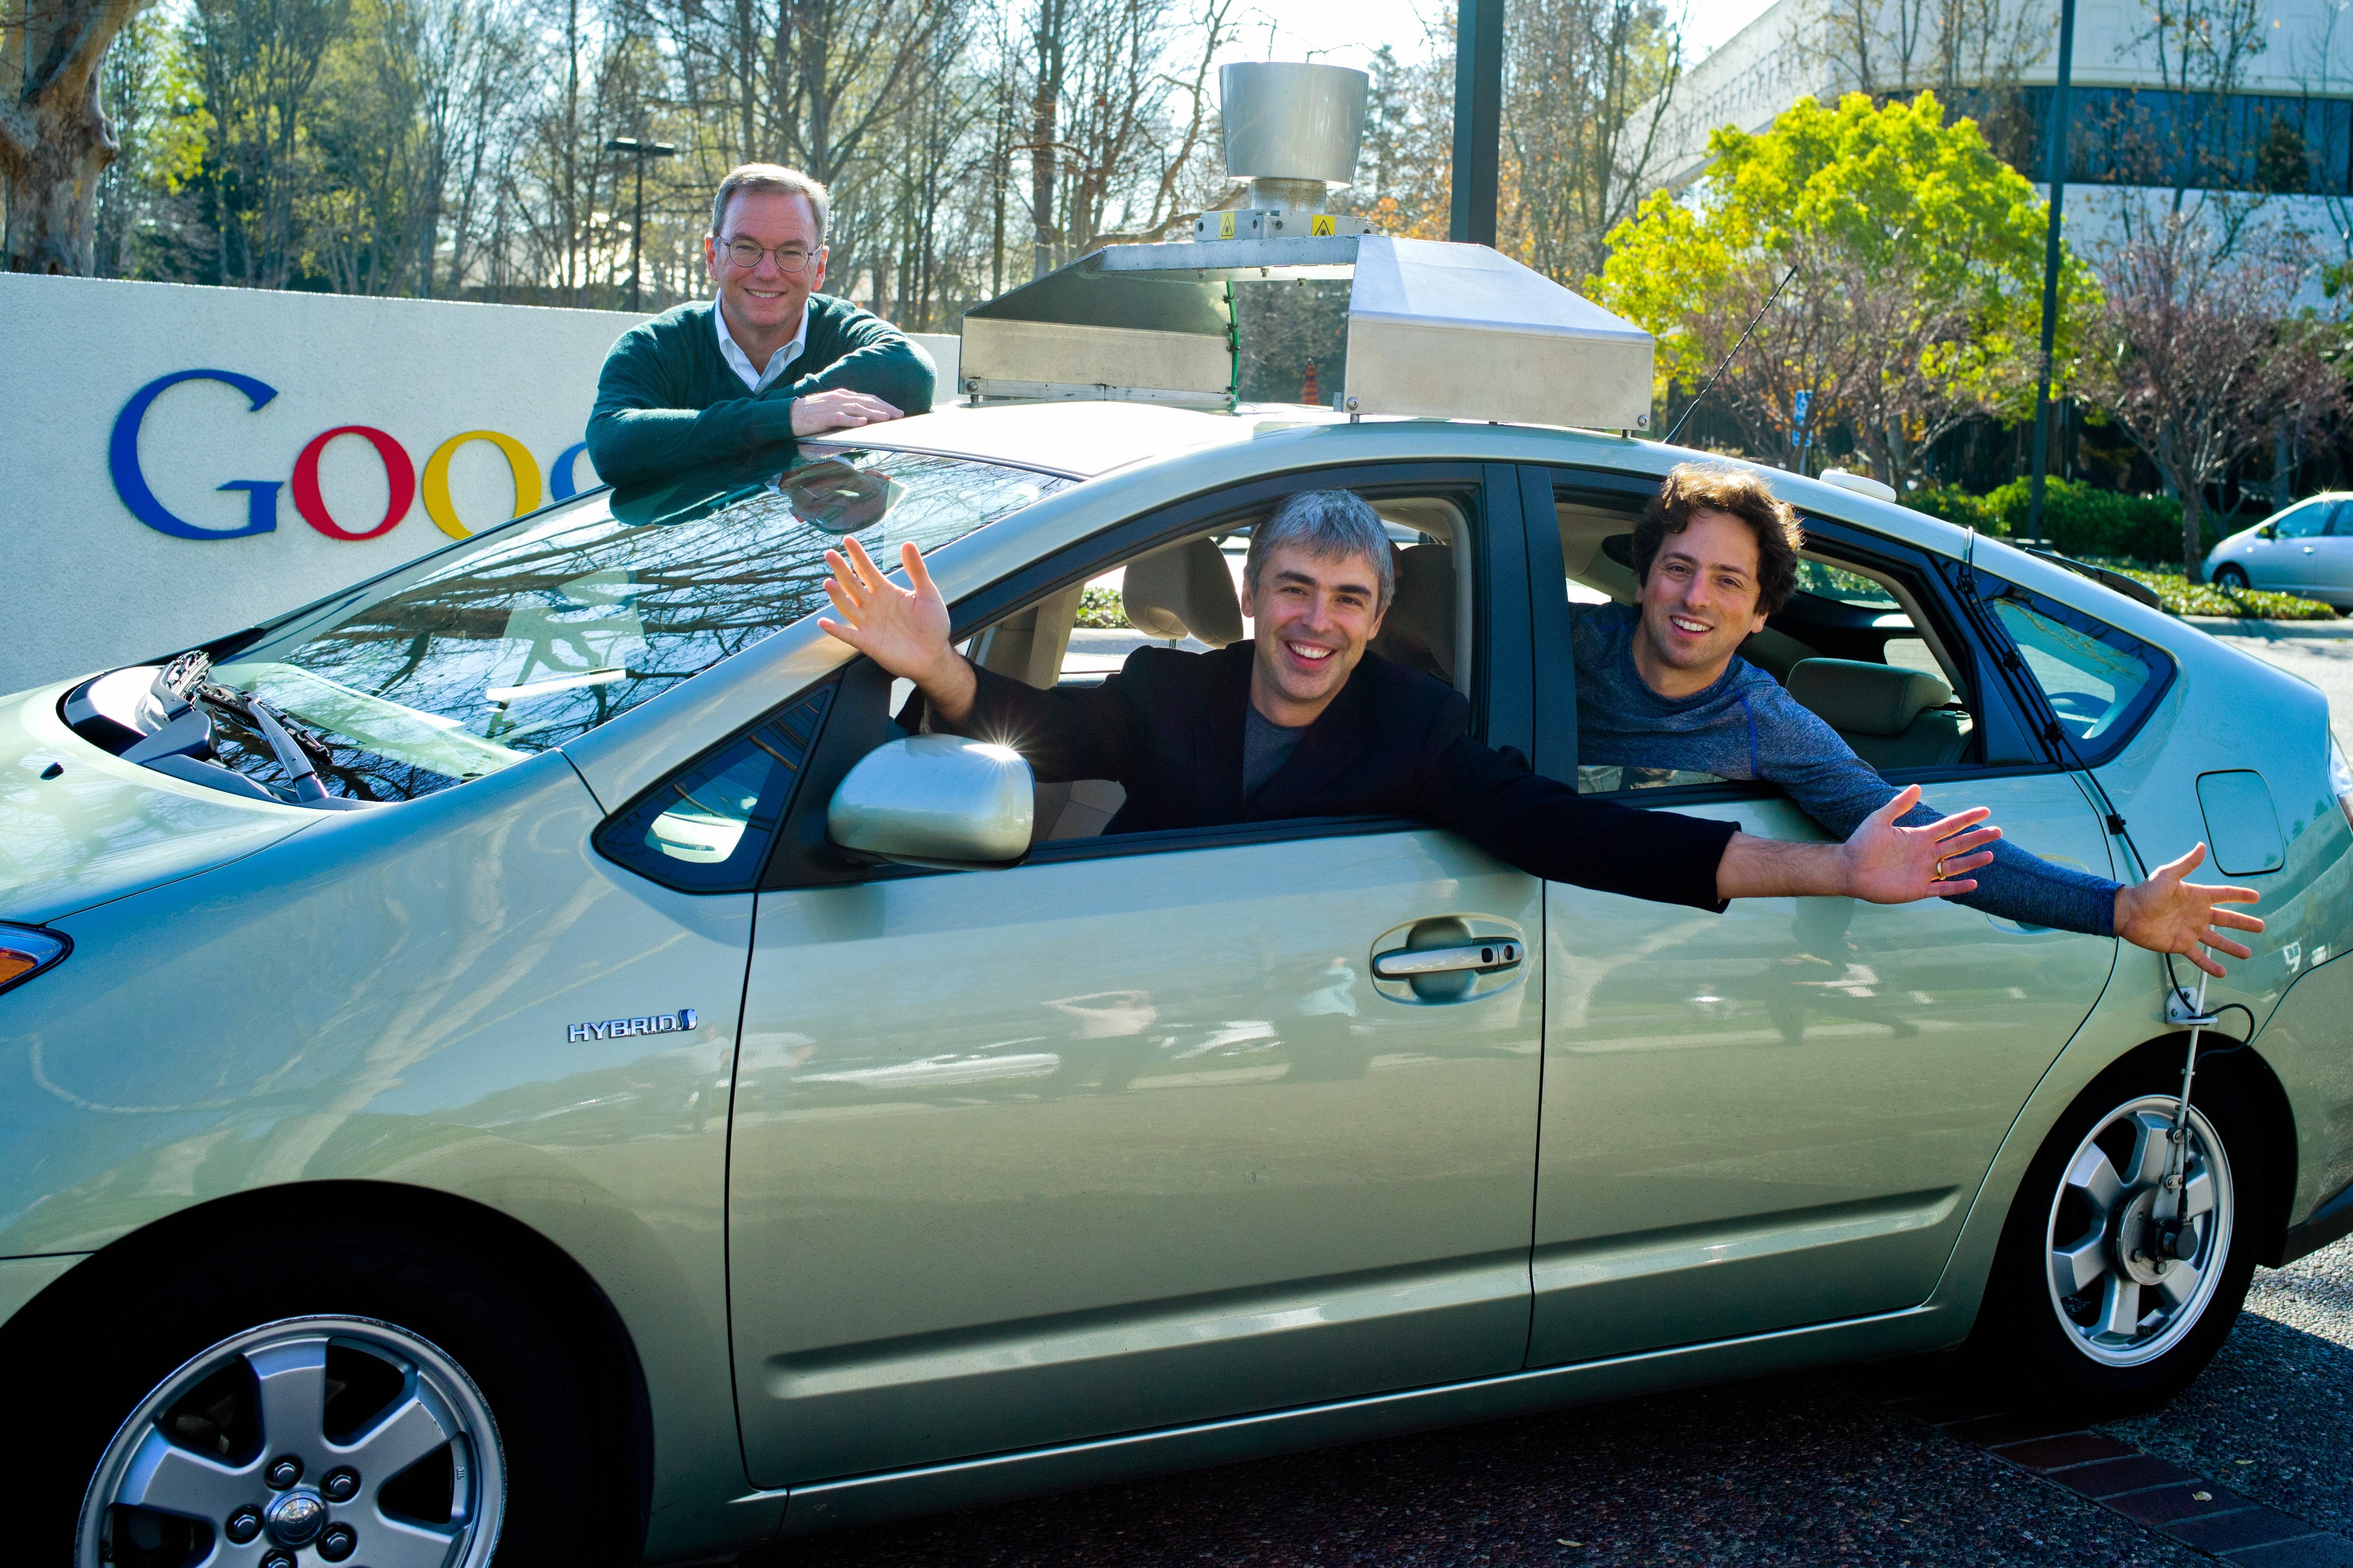 Google CEO Larry Page, Co-Founder Sergey Brin and Executive Chairman Eric Schmidt in a self-driving car on January 20, 2011. Courtesy Google.